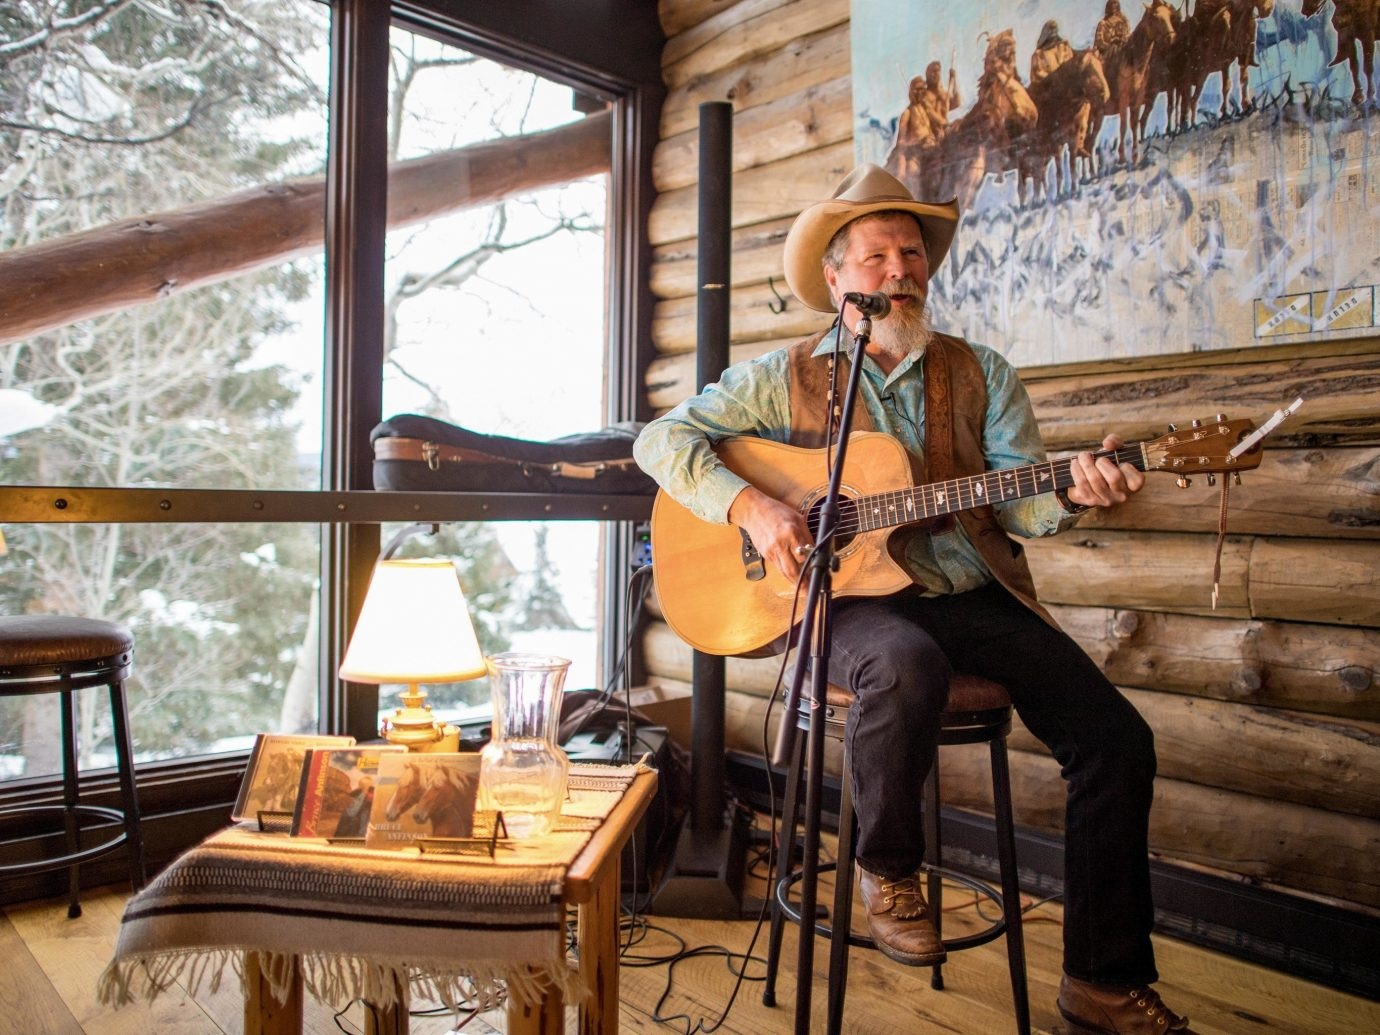 Glamping Hotels Montana Outdoors + Adventure Trip Ideas musician Music musical instrument plucked string instruments guitar string instrument session musician bowed string instrument violin family musical instrument accessory audio fiddle